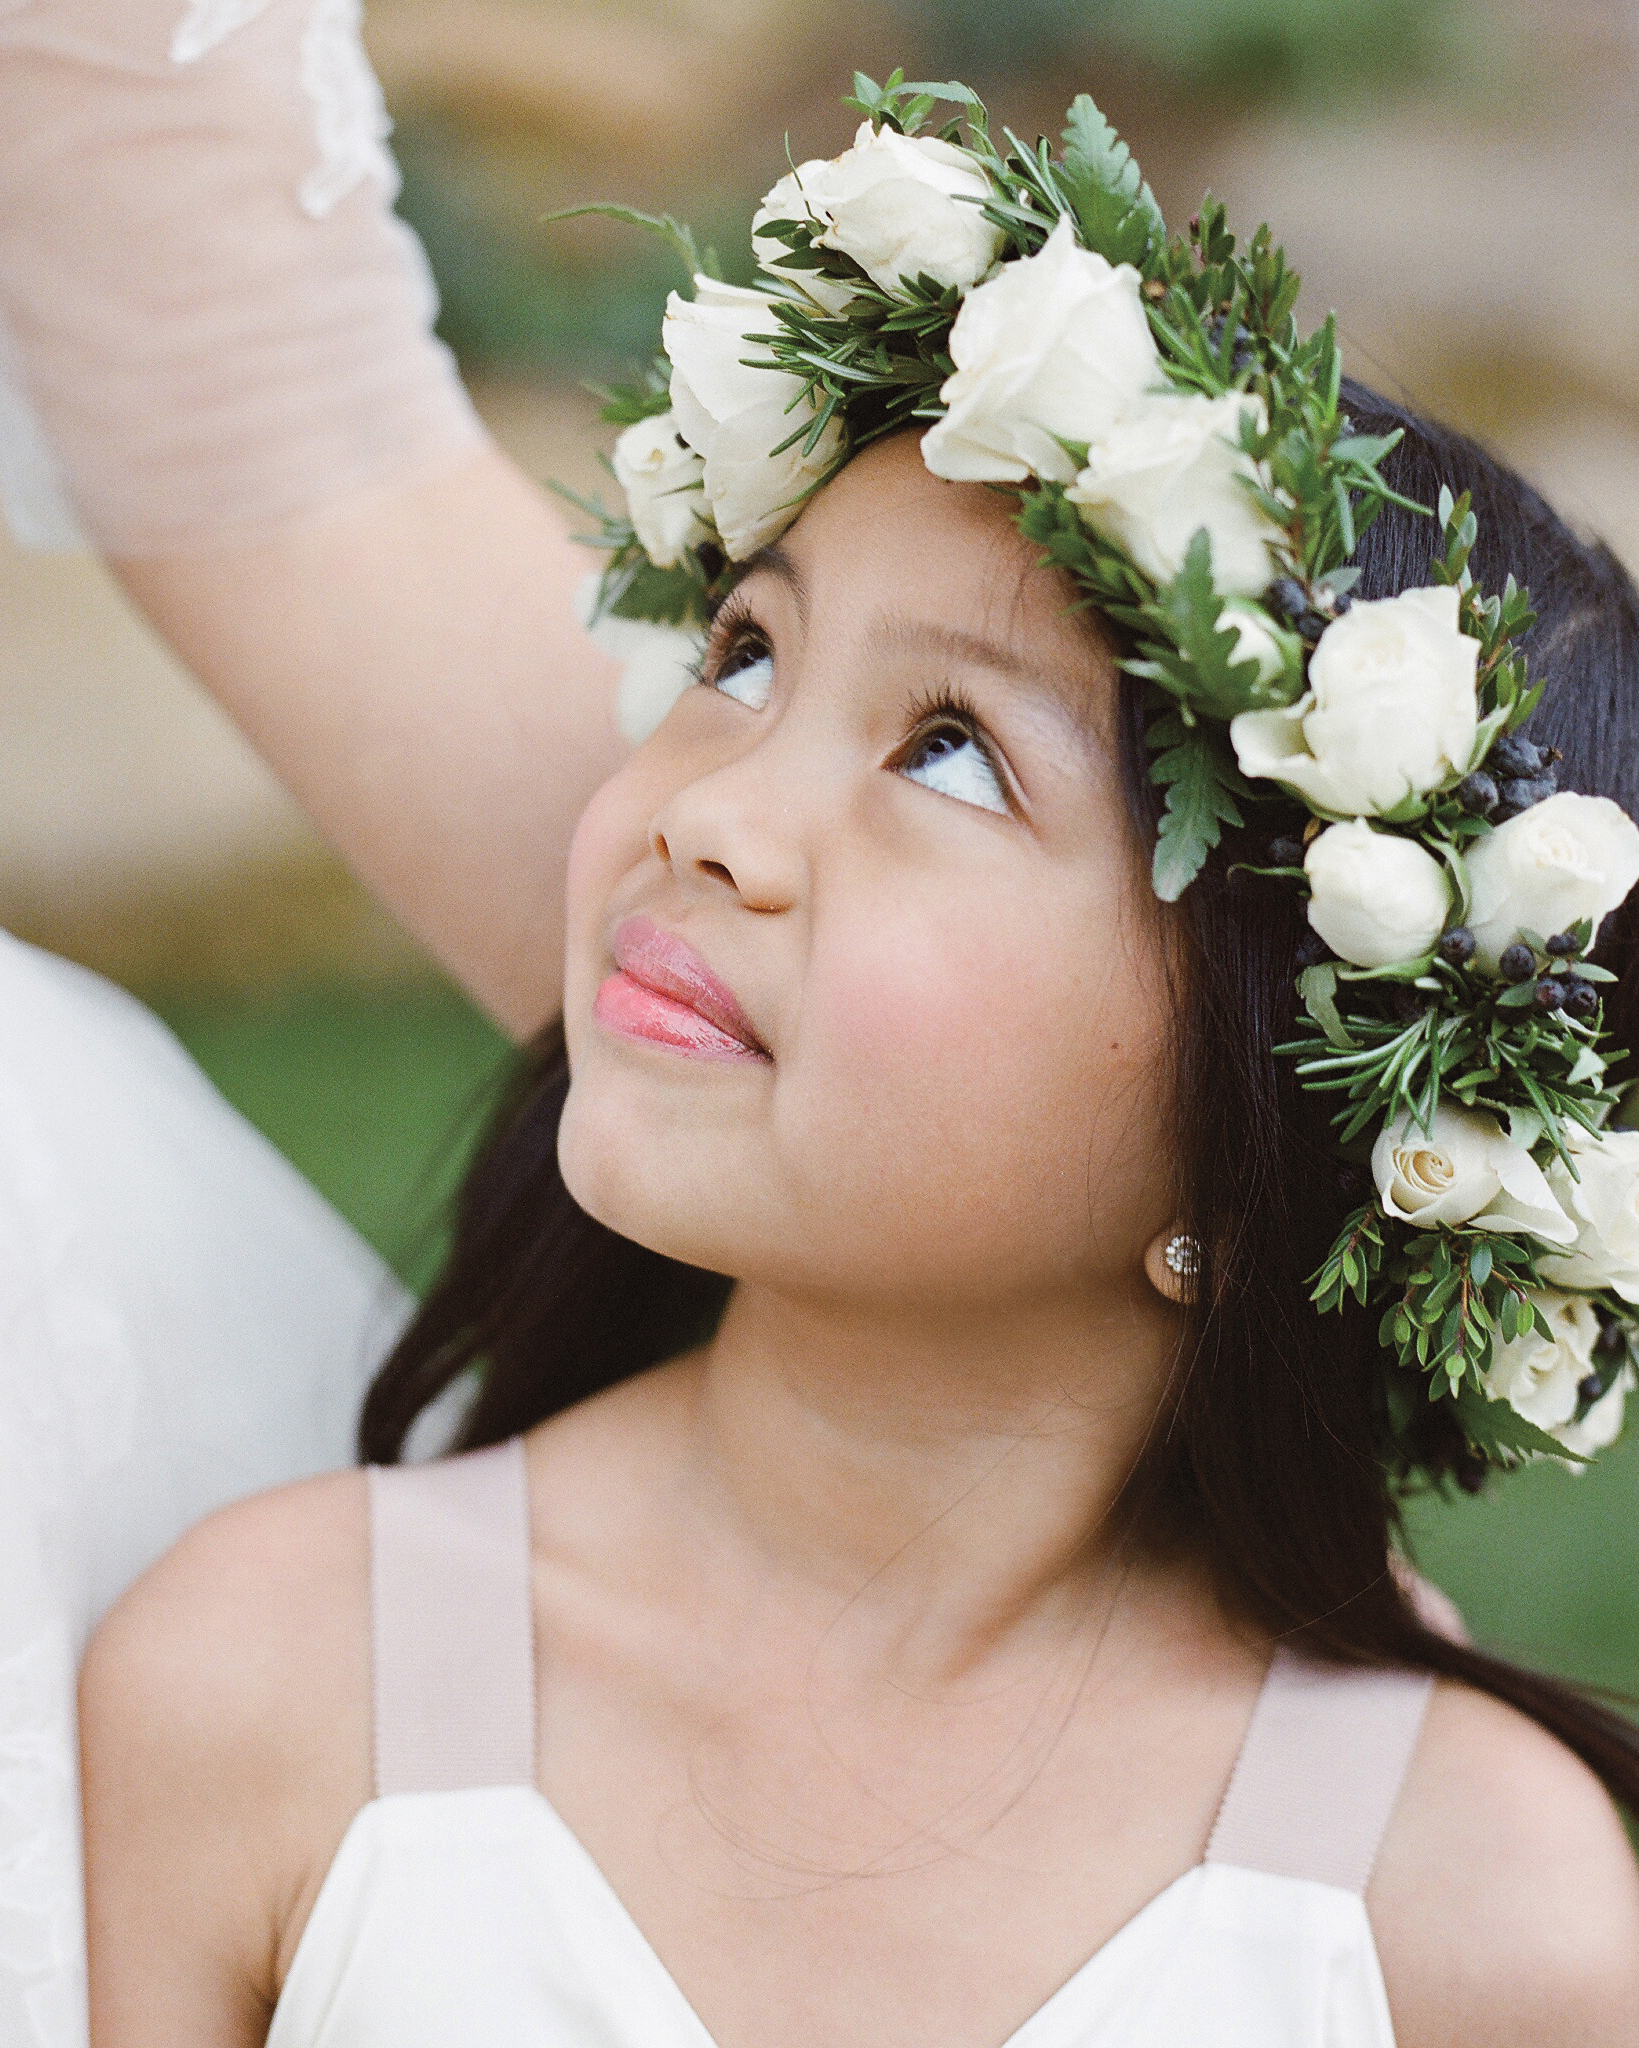 Should Our Flower Girl Have Her Hair and Makeup Done for the Wedding?